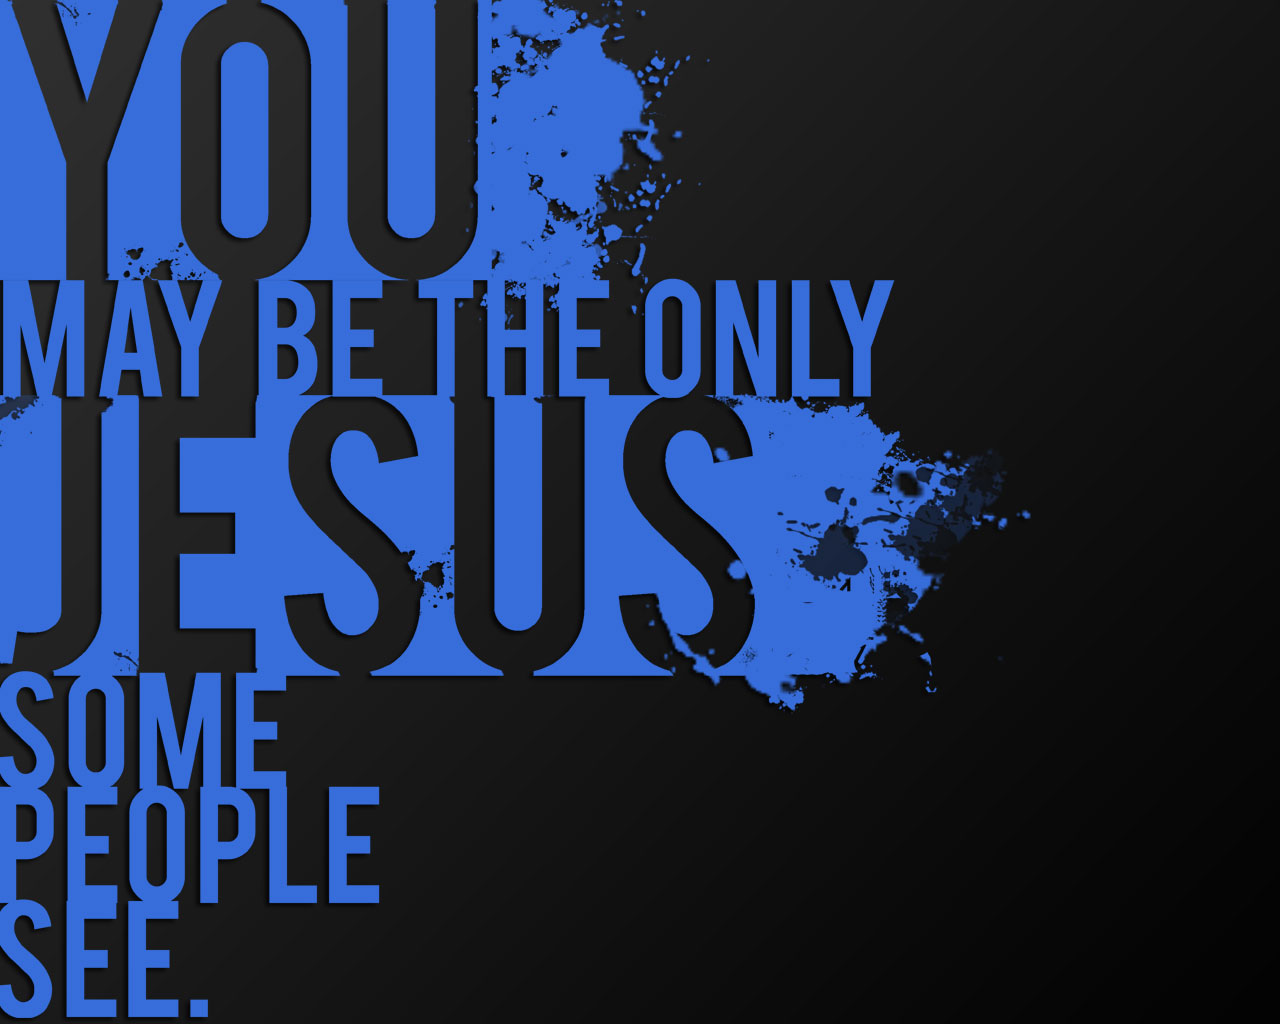 Cool Christian Wallpaper - Christian Wallpapers and ...